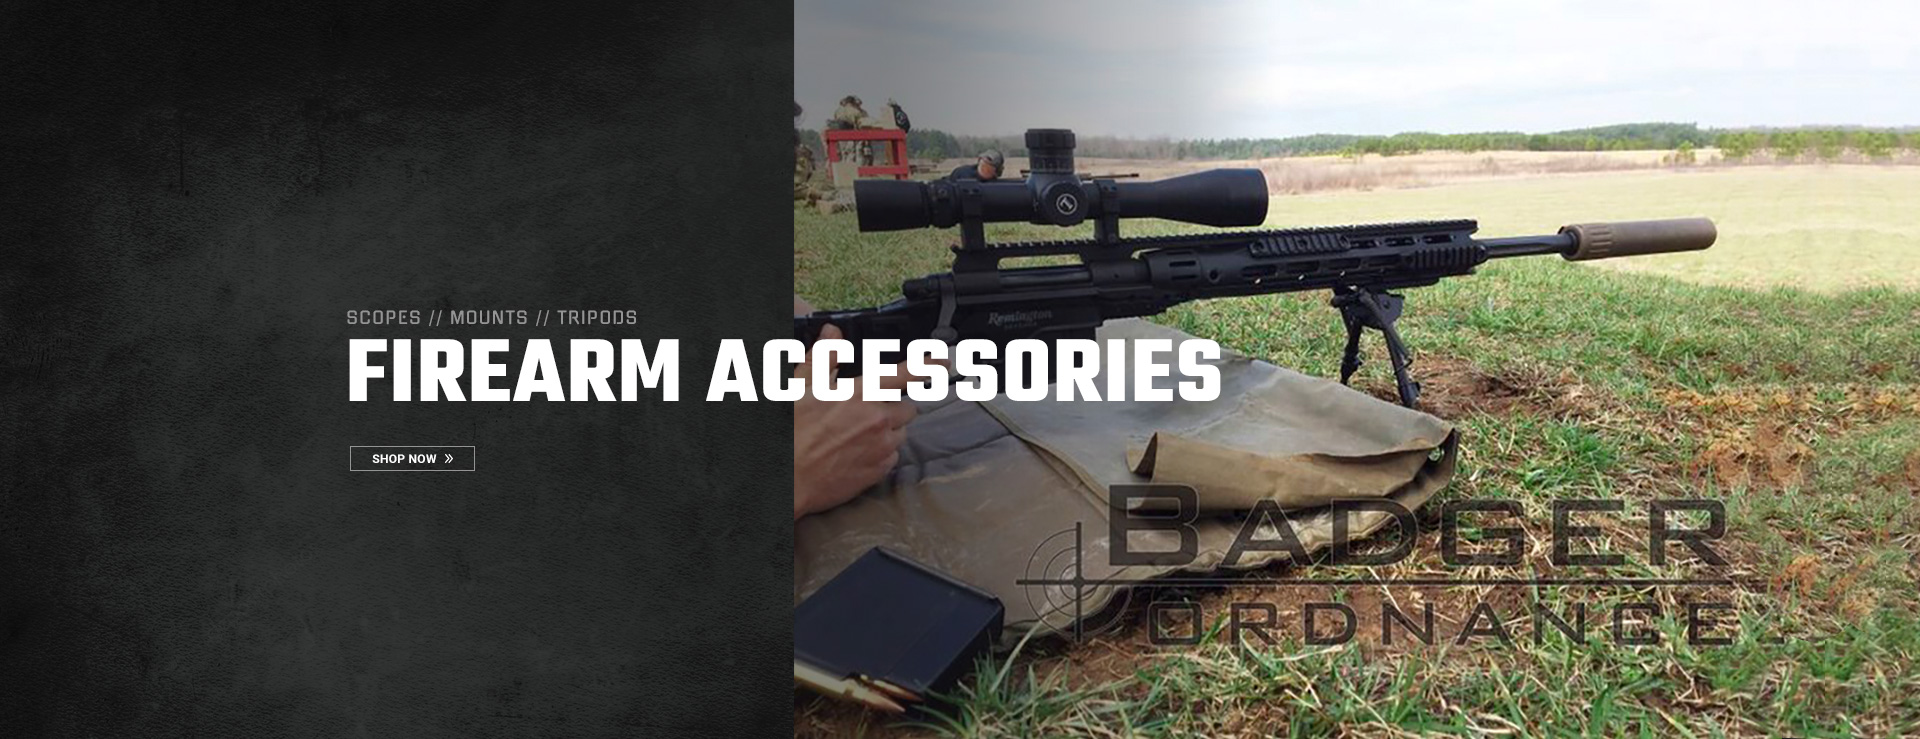 Scopes, Mounts, Tripods, and other firearm accessories